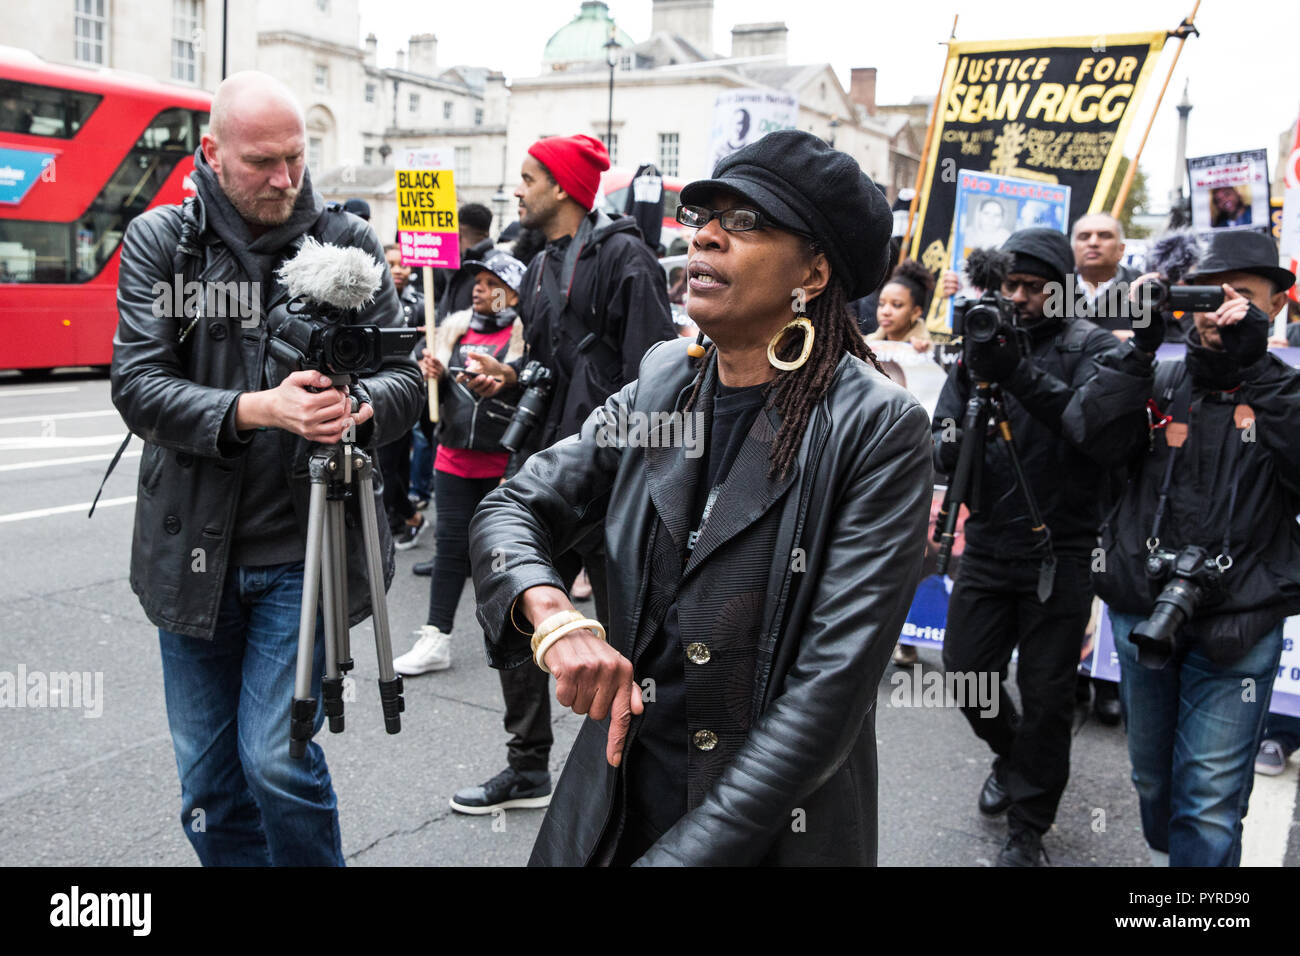 London, UK. 27th October, 2018. Marcia Rigg, sister of Sean Rigg, marches with campaigners from the United Families and Friends Campaign (UFFC). - Stock Image